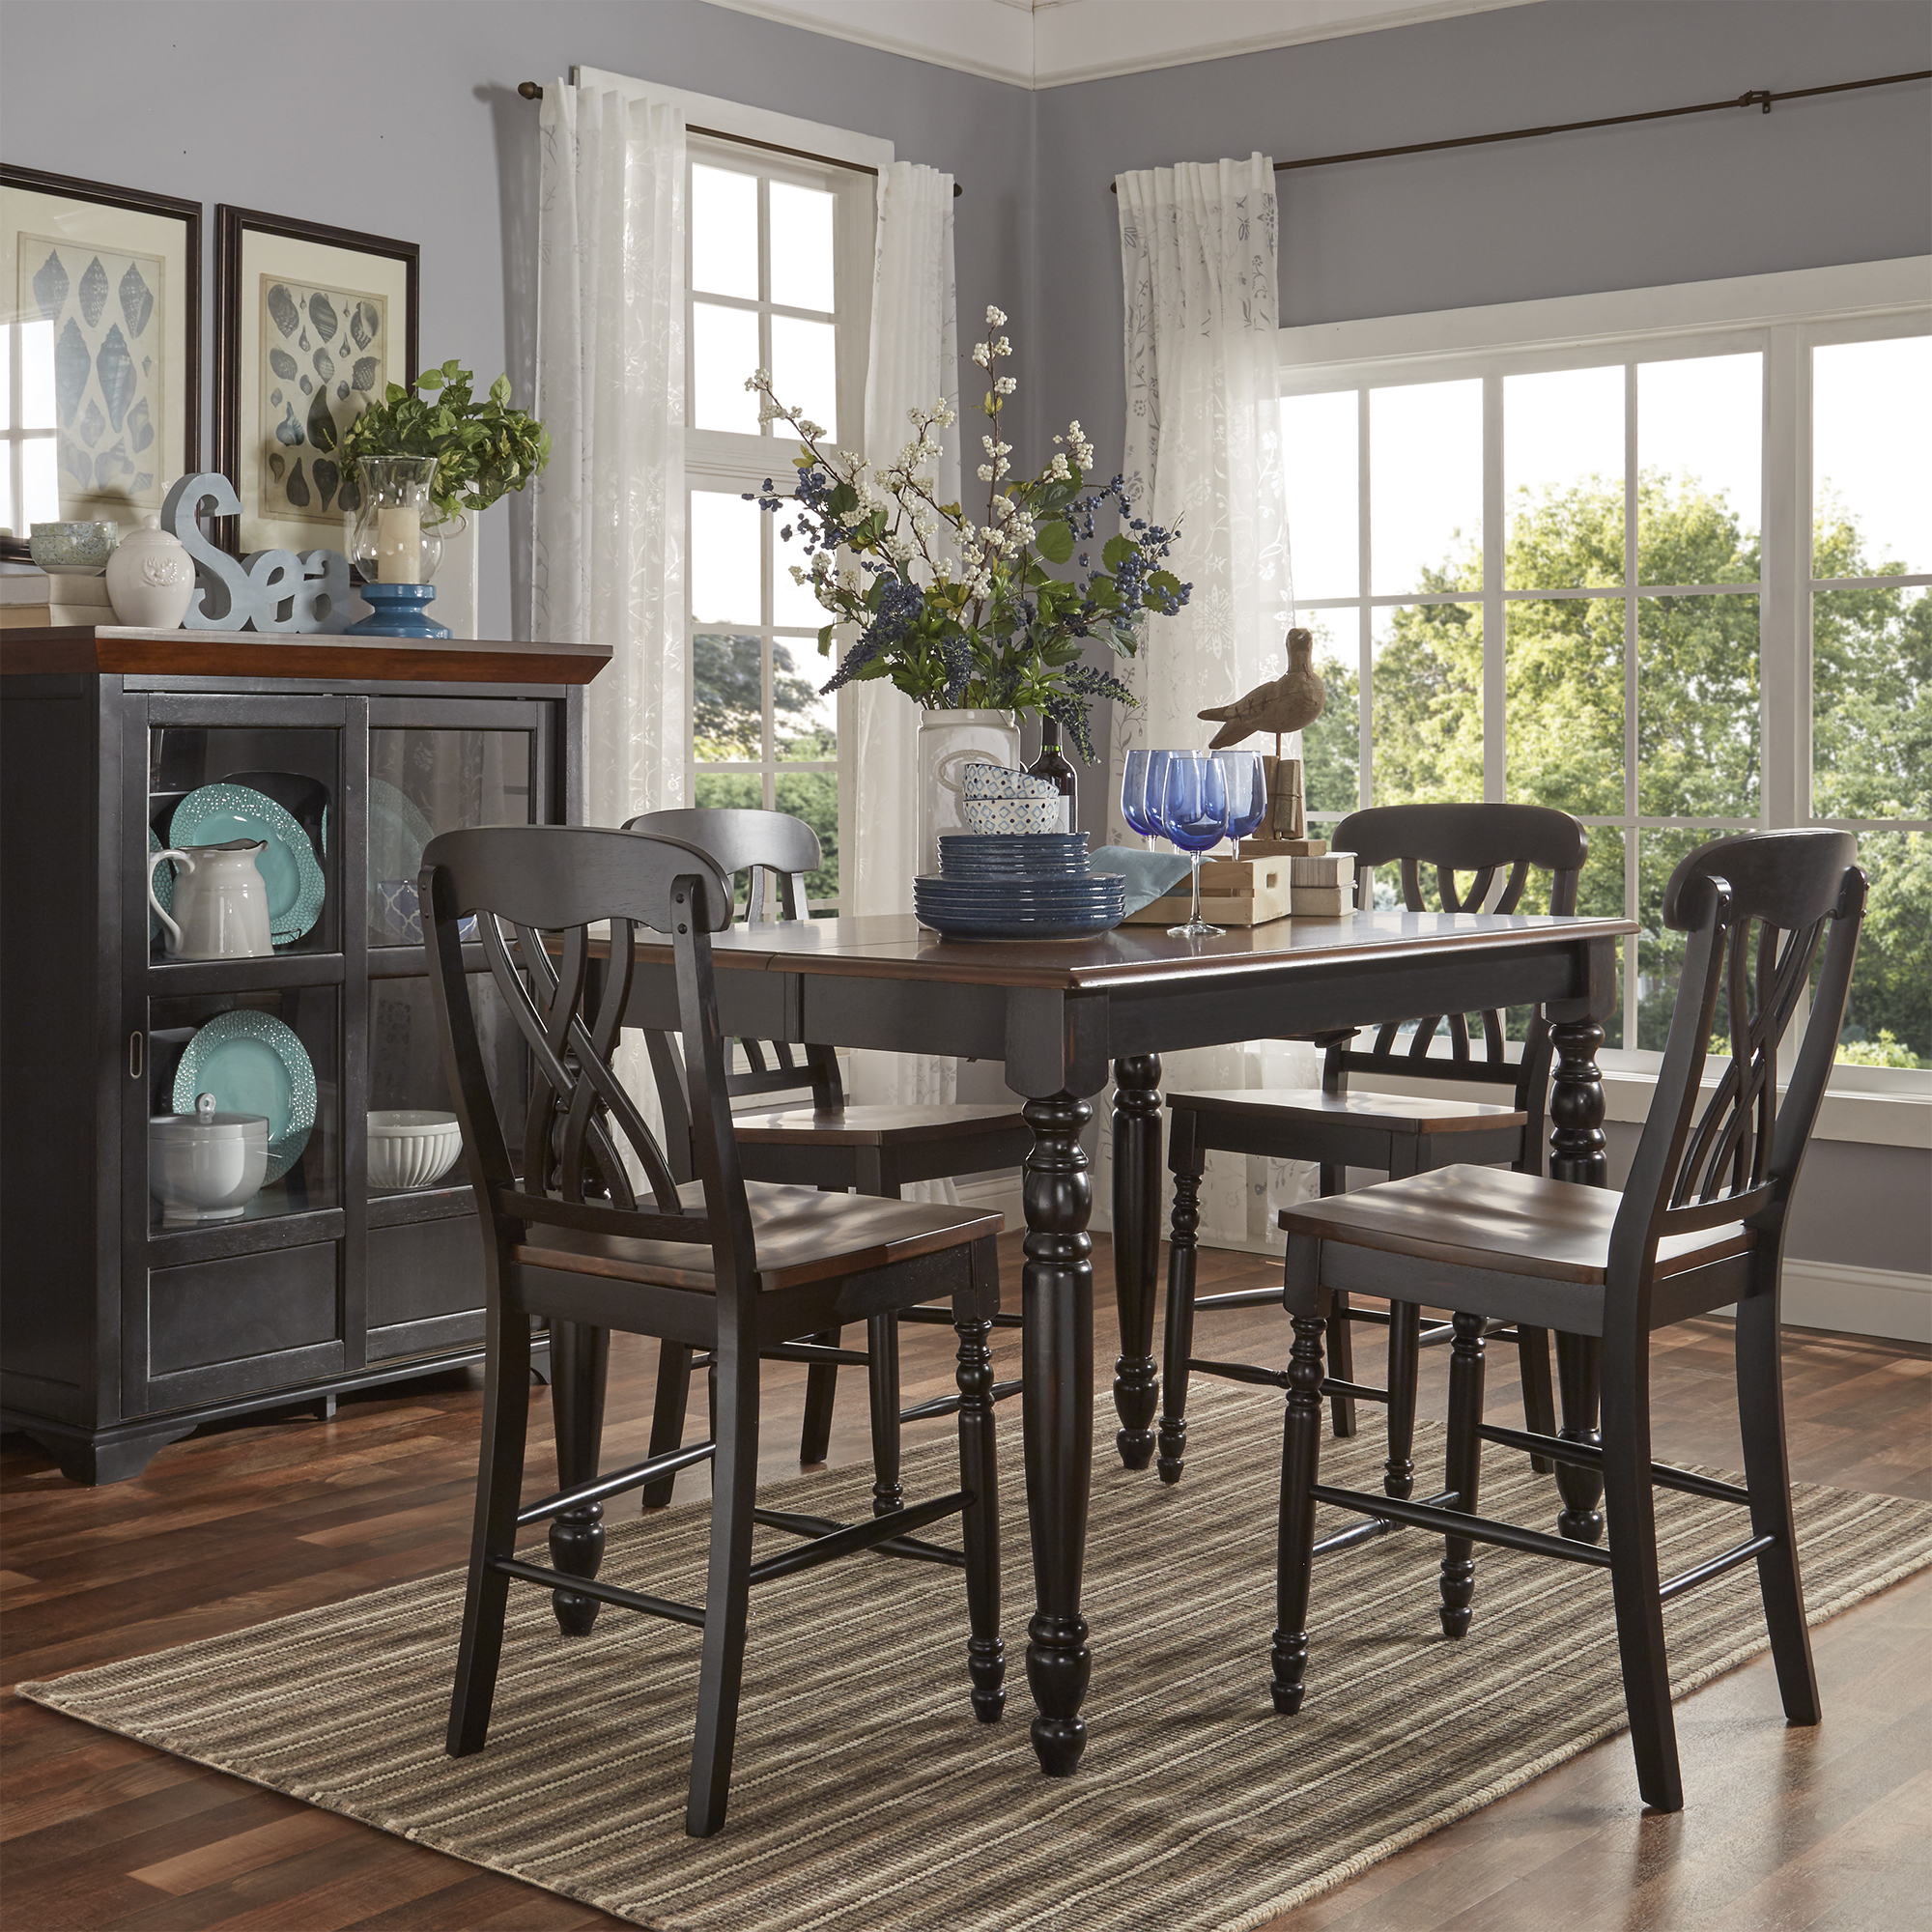 Weston Home Two Tone 5 Piece Counter Height Dining Set, Antique Black